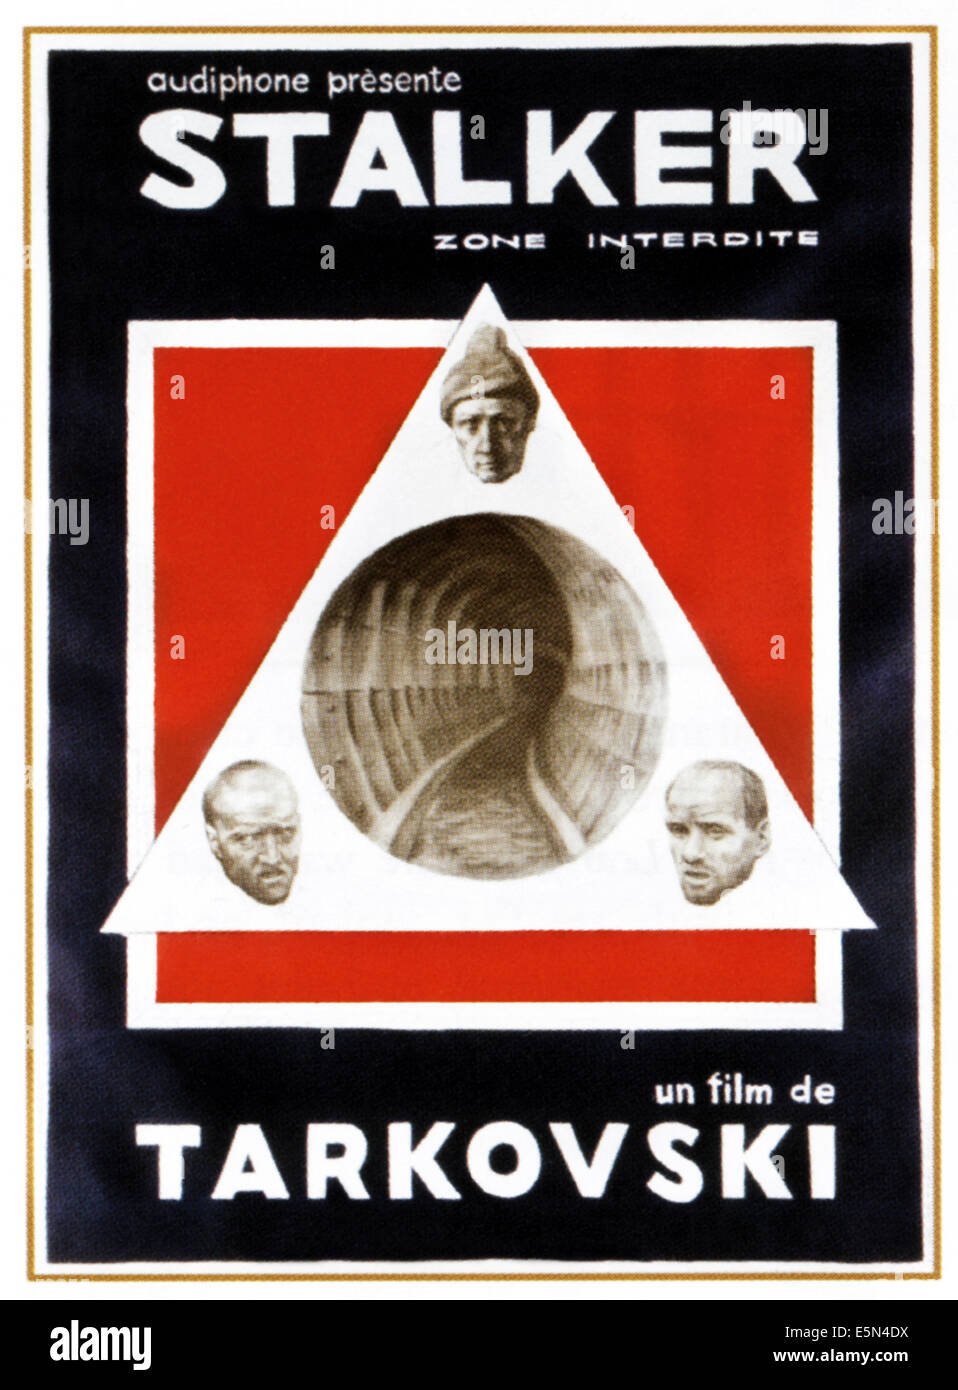 STALKER, 1980s Russian poster, 1979. - Stock Image